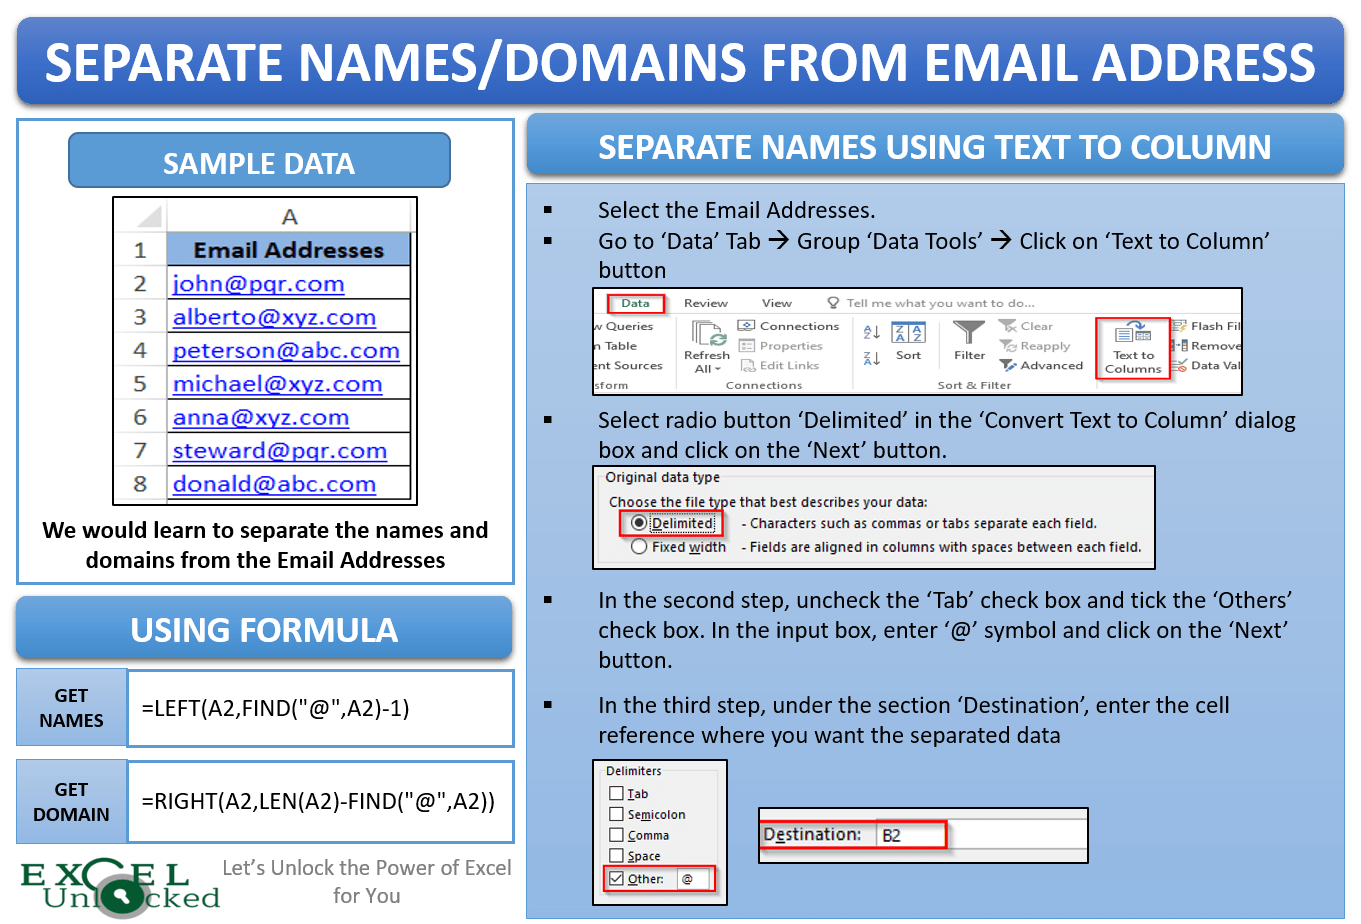 How To Get Name From Email Address In Excel